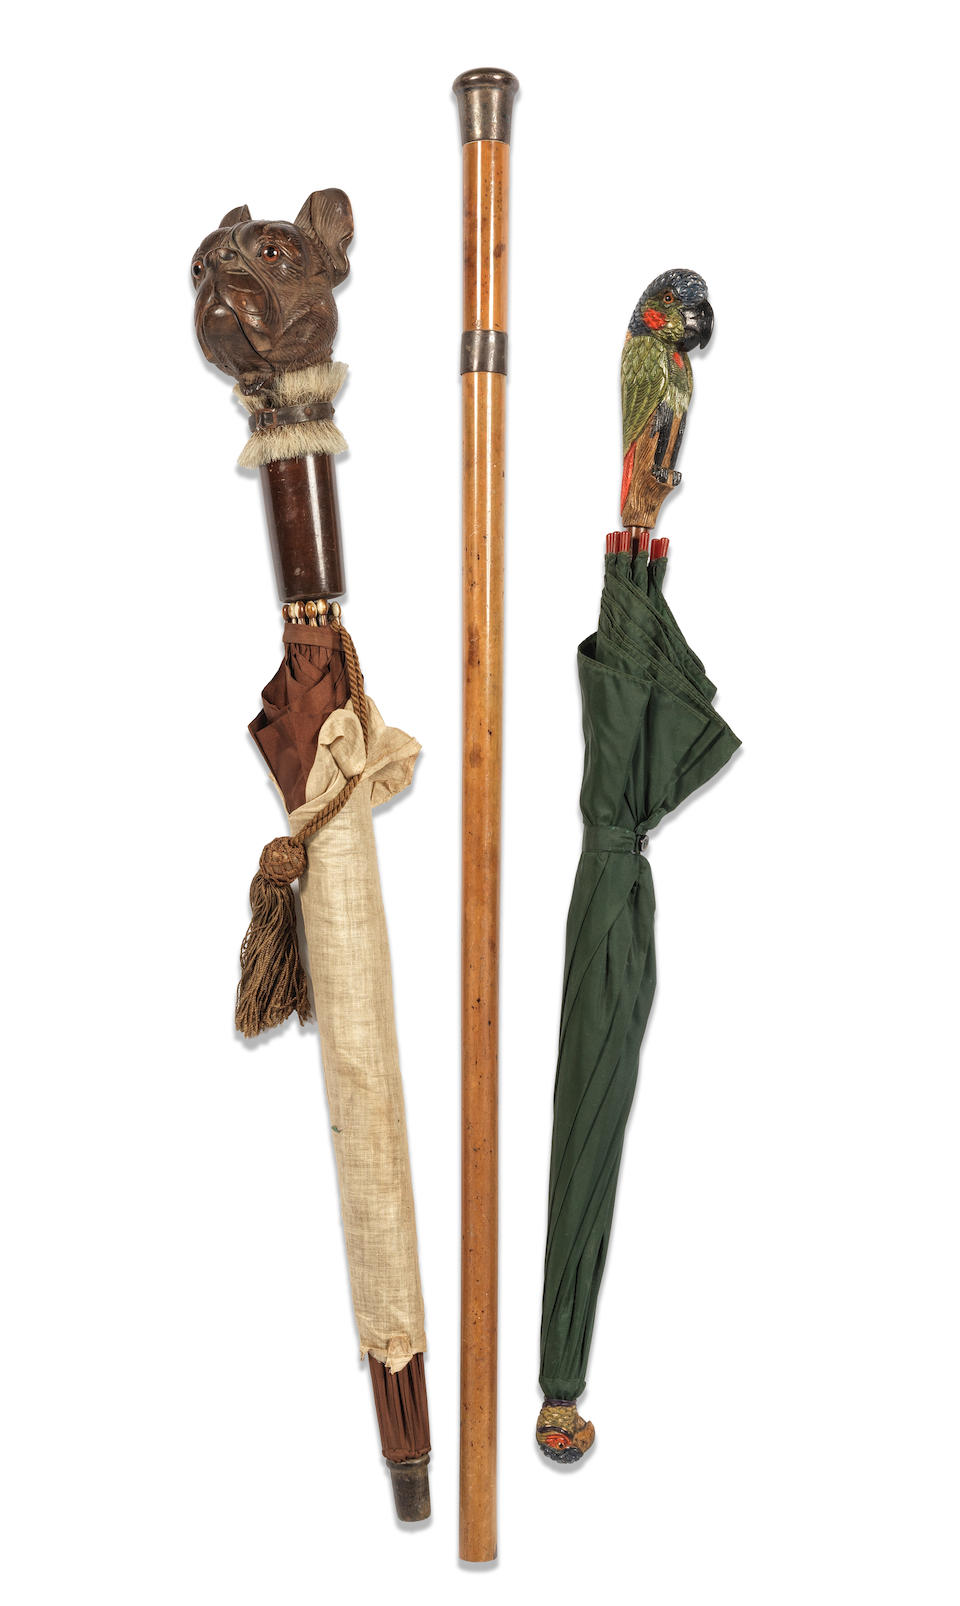 An early 20th century Black Forest carved and stained wood French bull dog's head handled novelty umbrella together with a carved and polychrome stained parrot's head novelty umbrella and a silver mounted malacca walking cane (3)